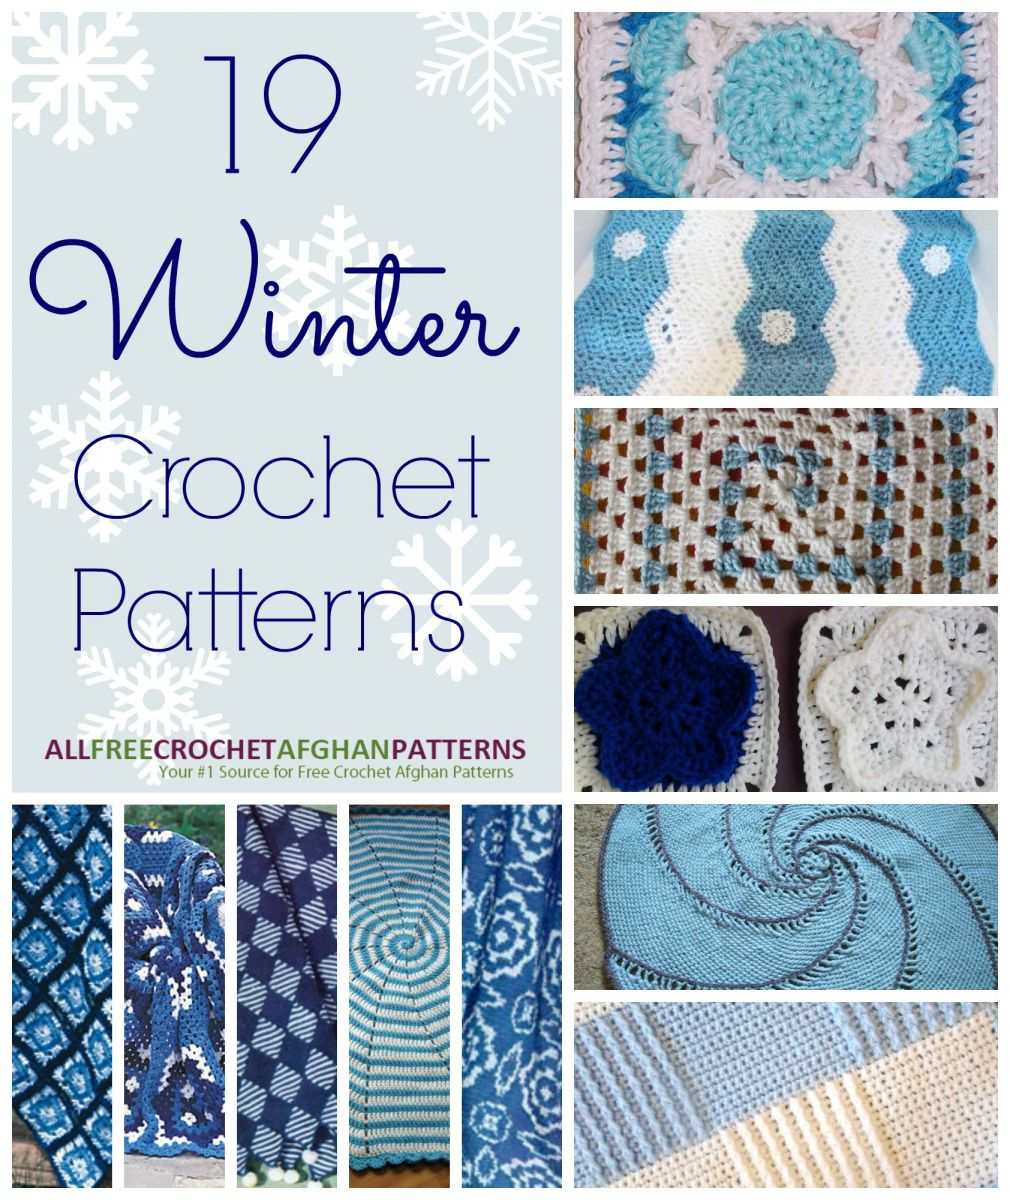 19 Winter Crochet Patterns